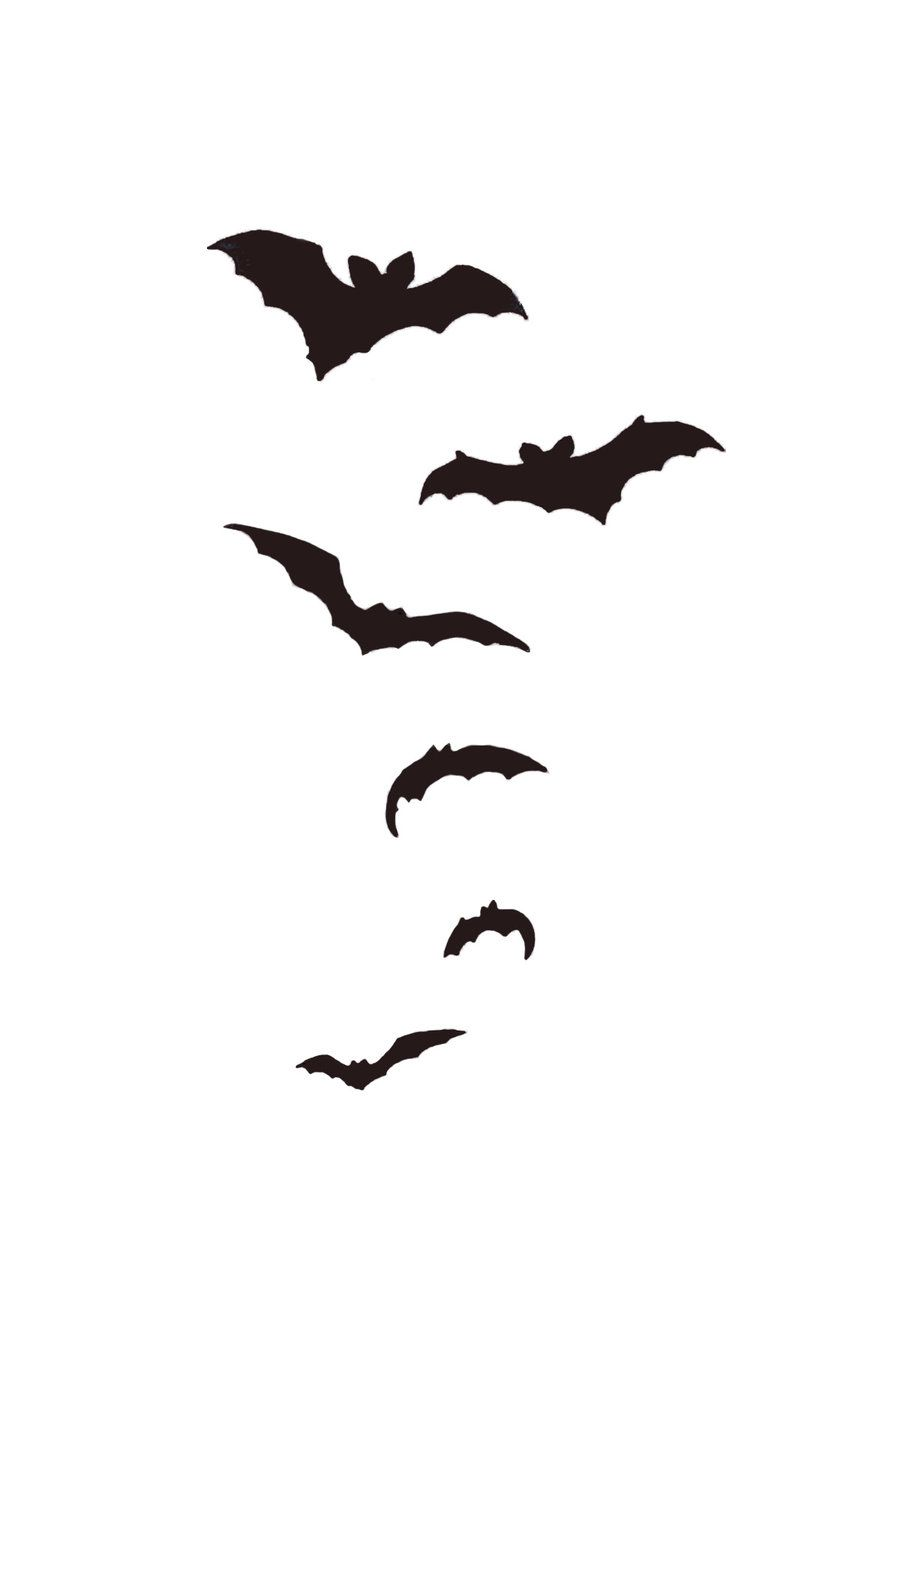 Bat Tattoo Design By Lawrence252 Tattoo Tattoos Silhouette